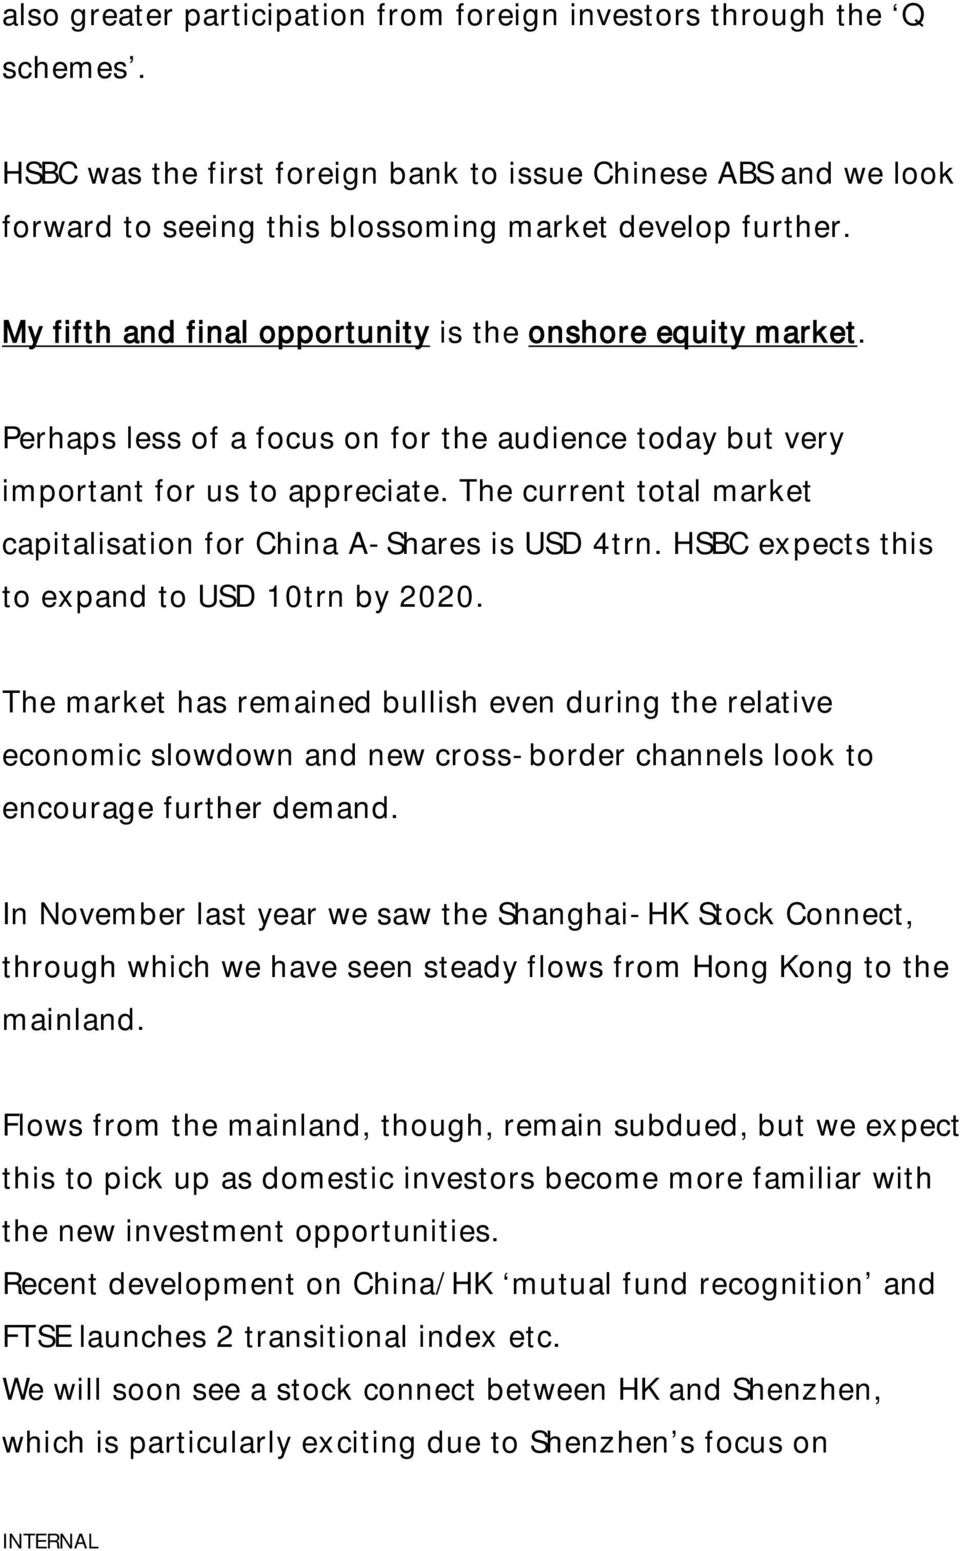 The current total market capitalisation for China A-Shares is USD 4trn. HSBC expects this to expand to USD 10trn by 2020.